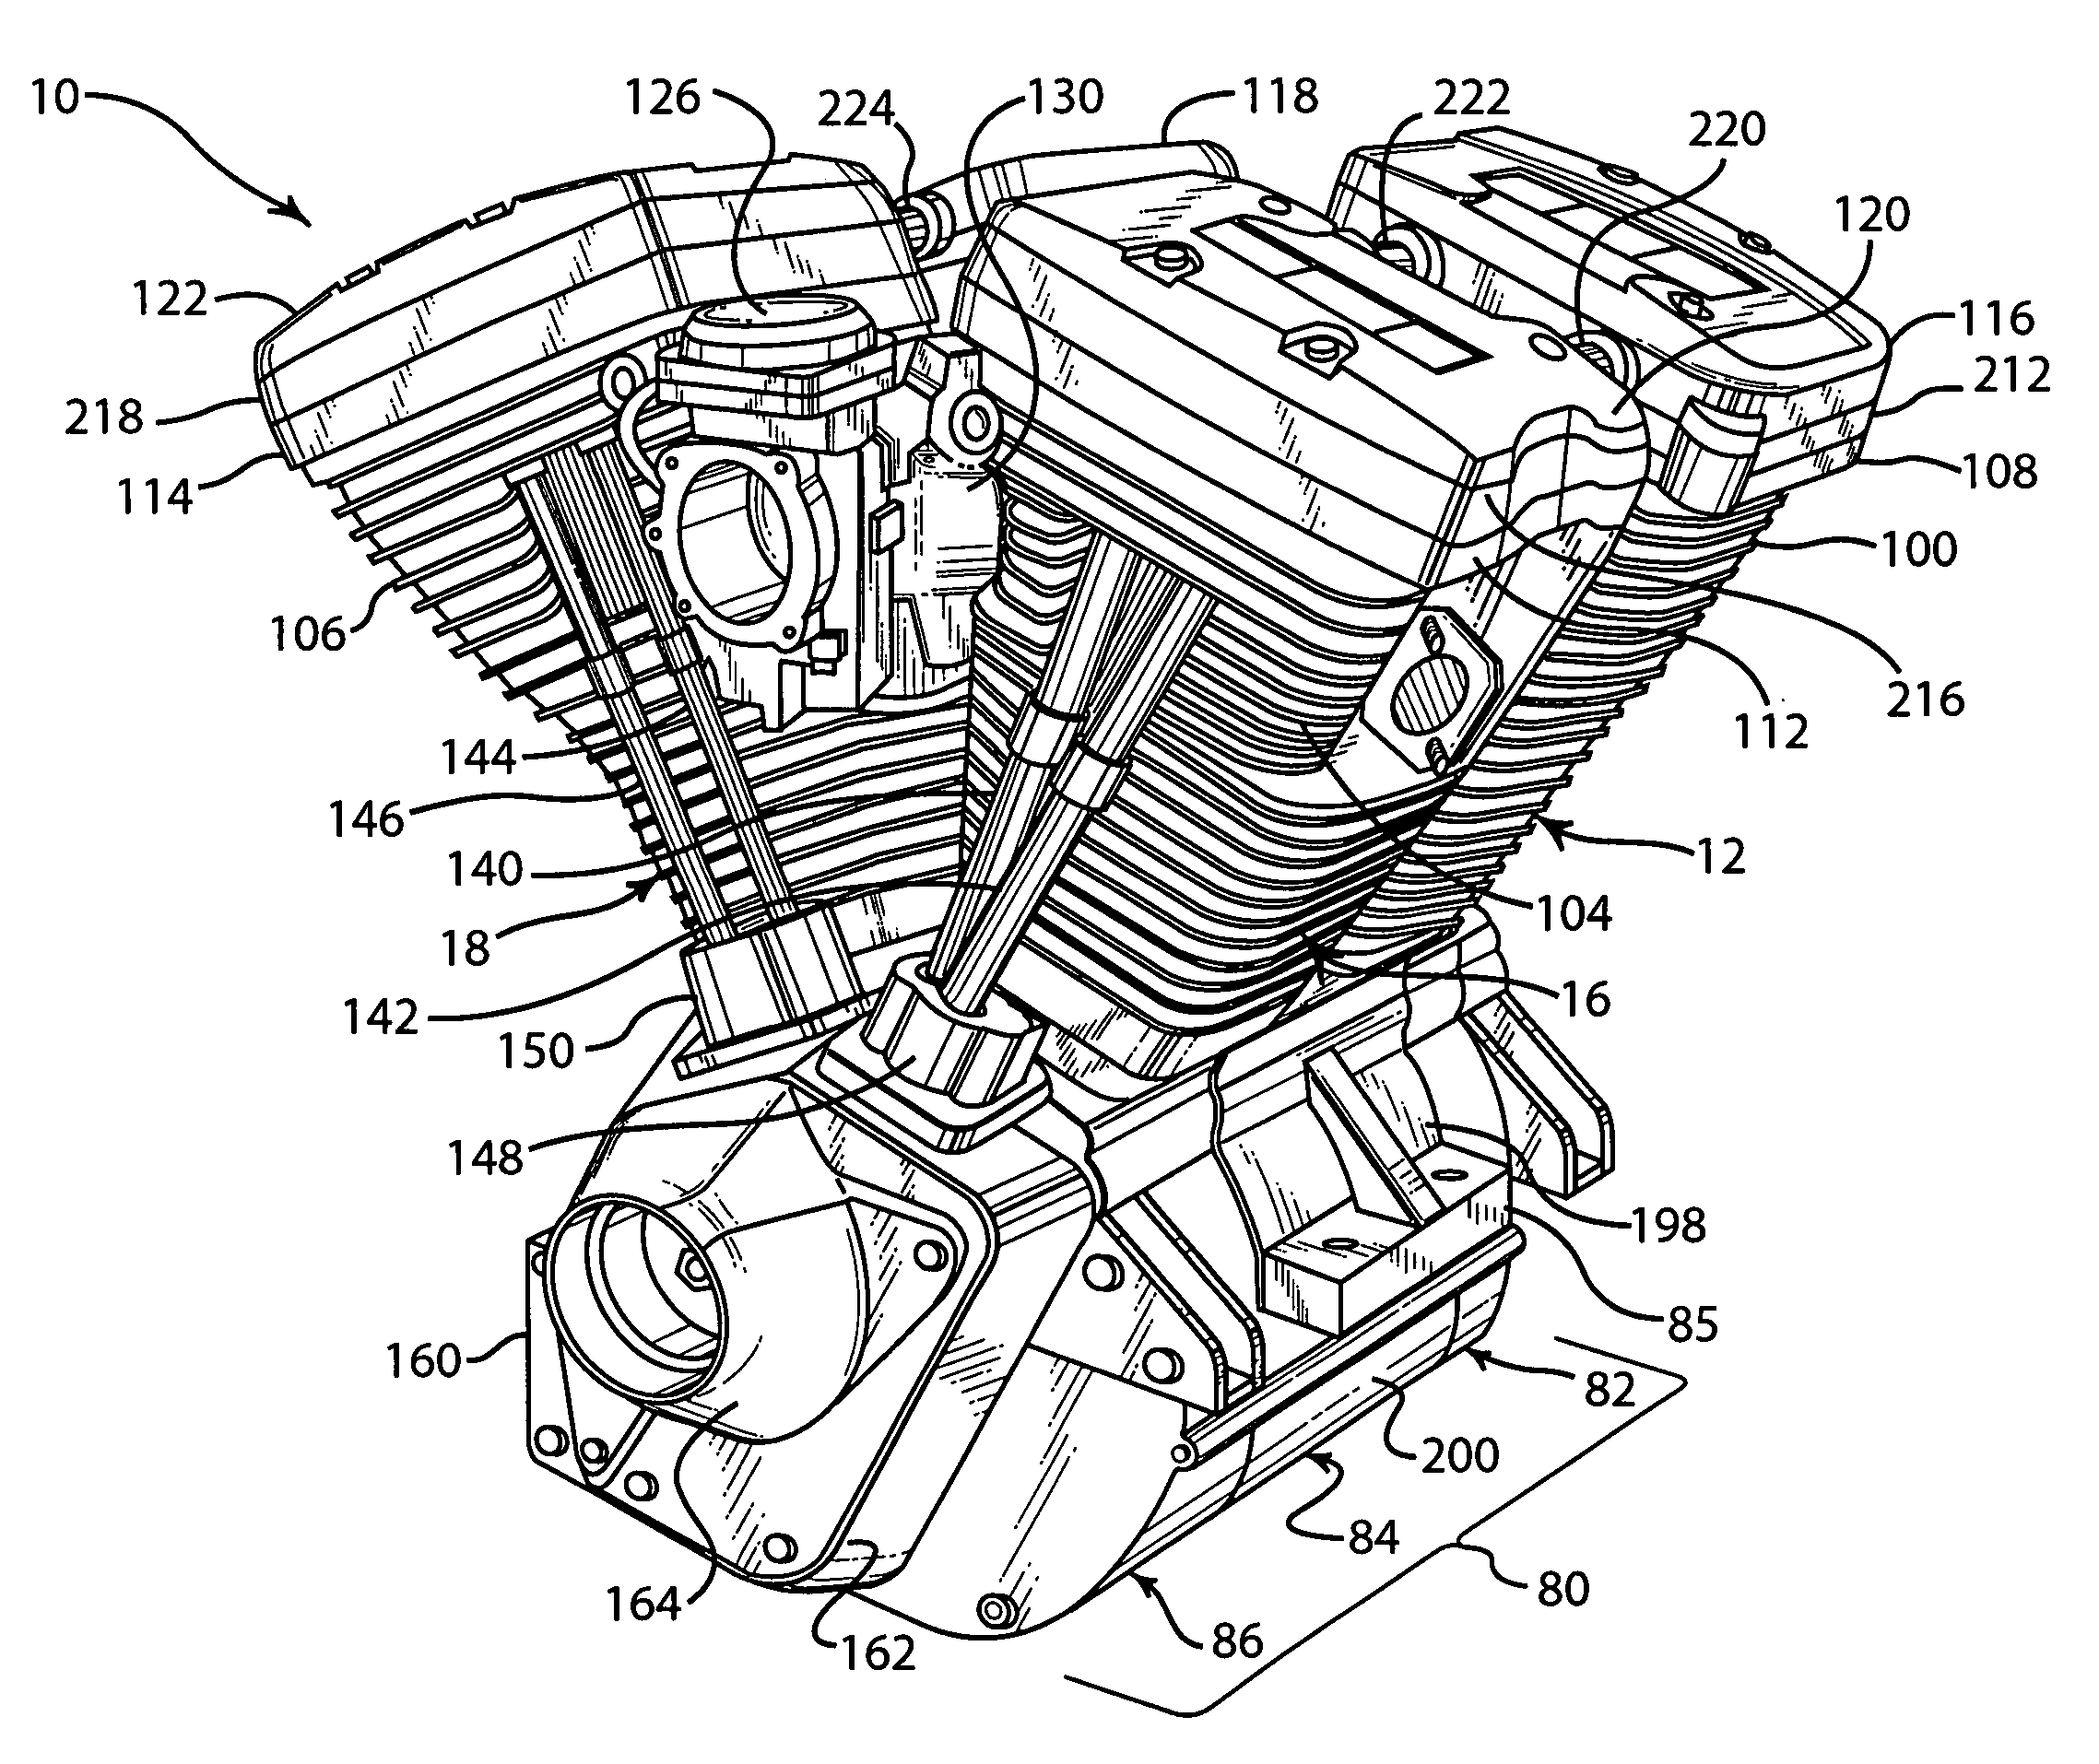 Harley Sportster Engine Drawings